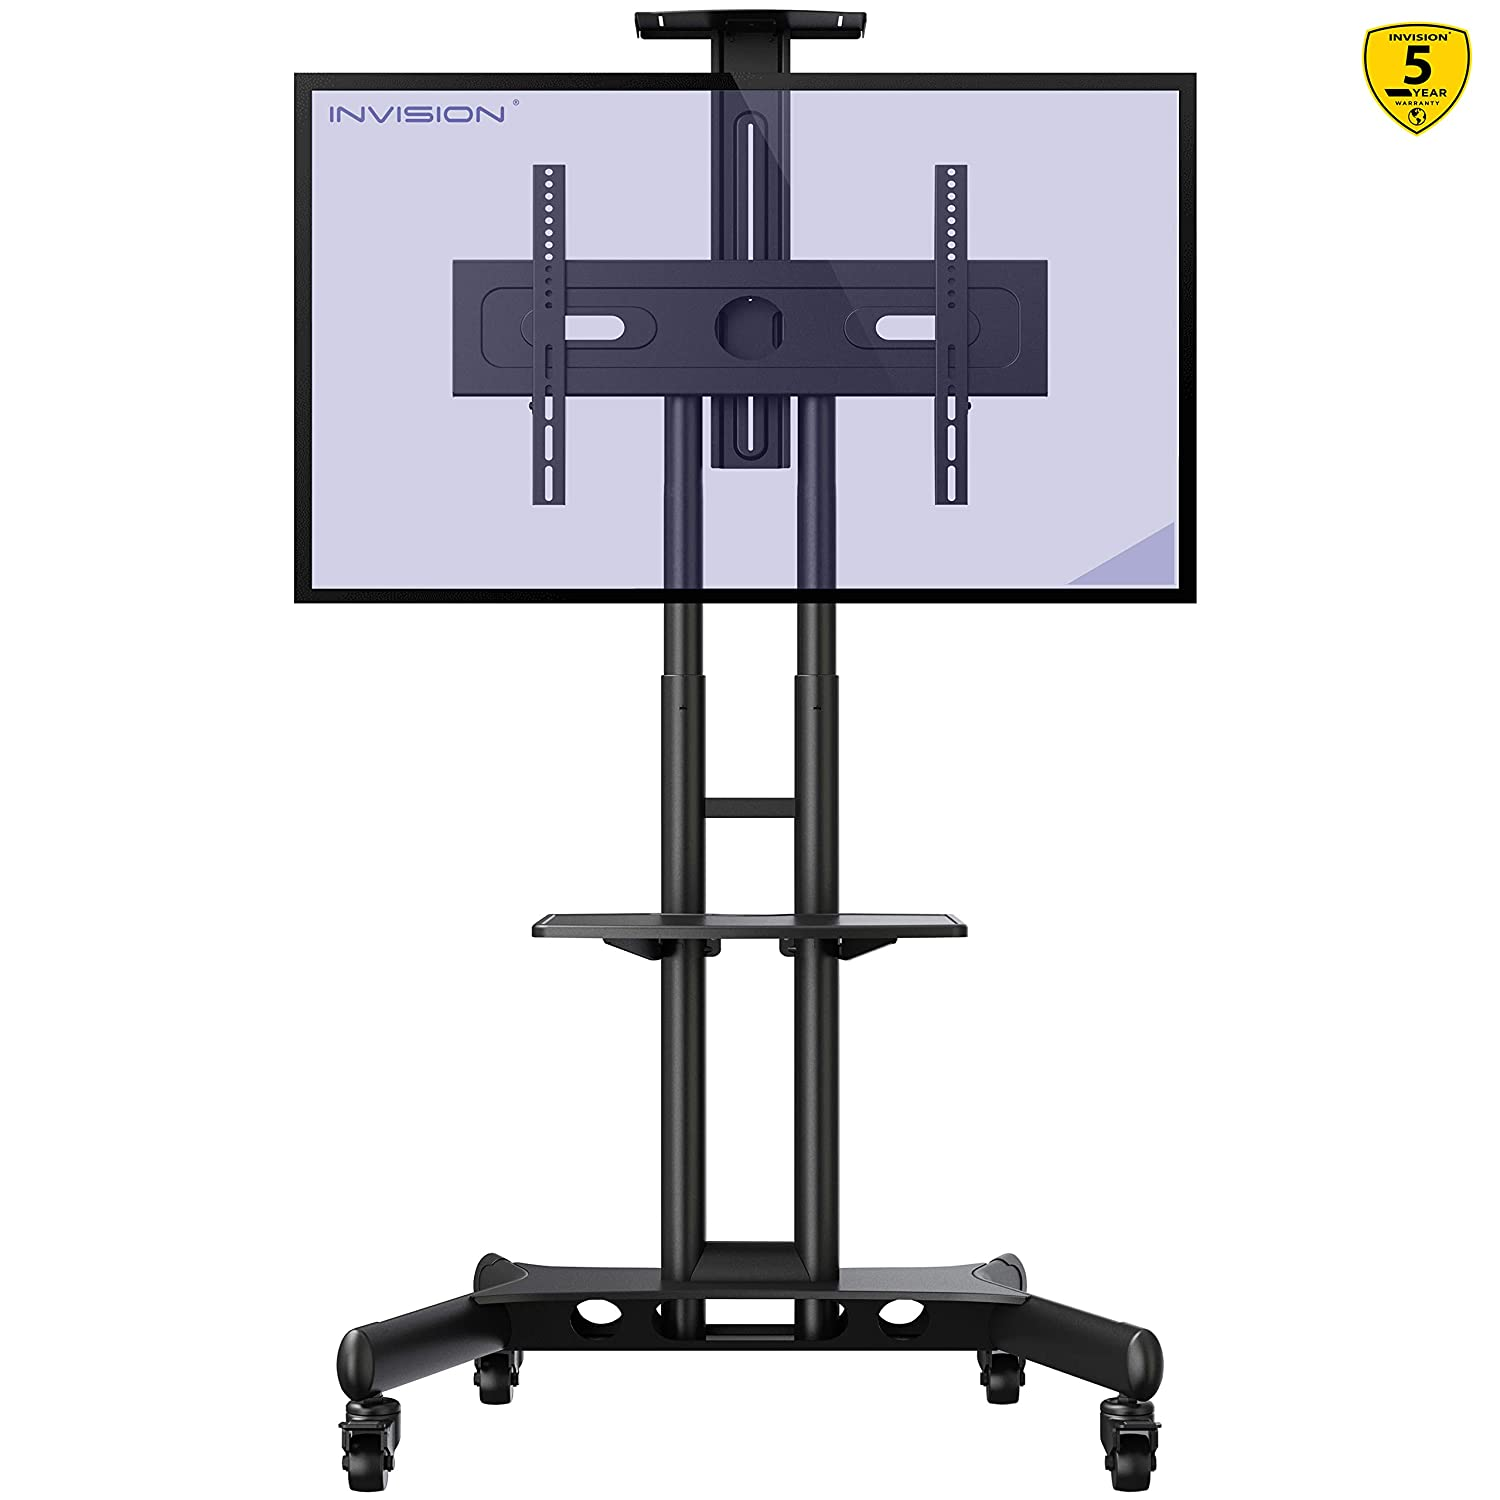 INVISION Mobile TV Cart LCD Stand